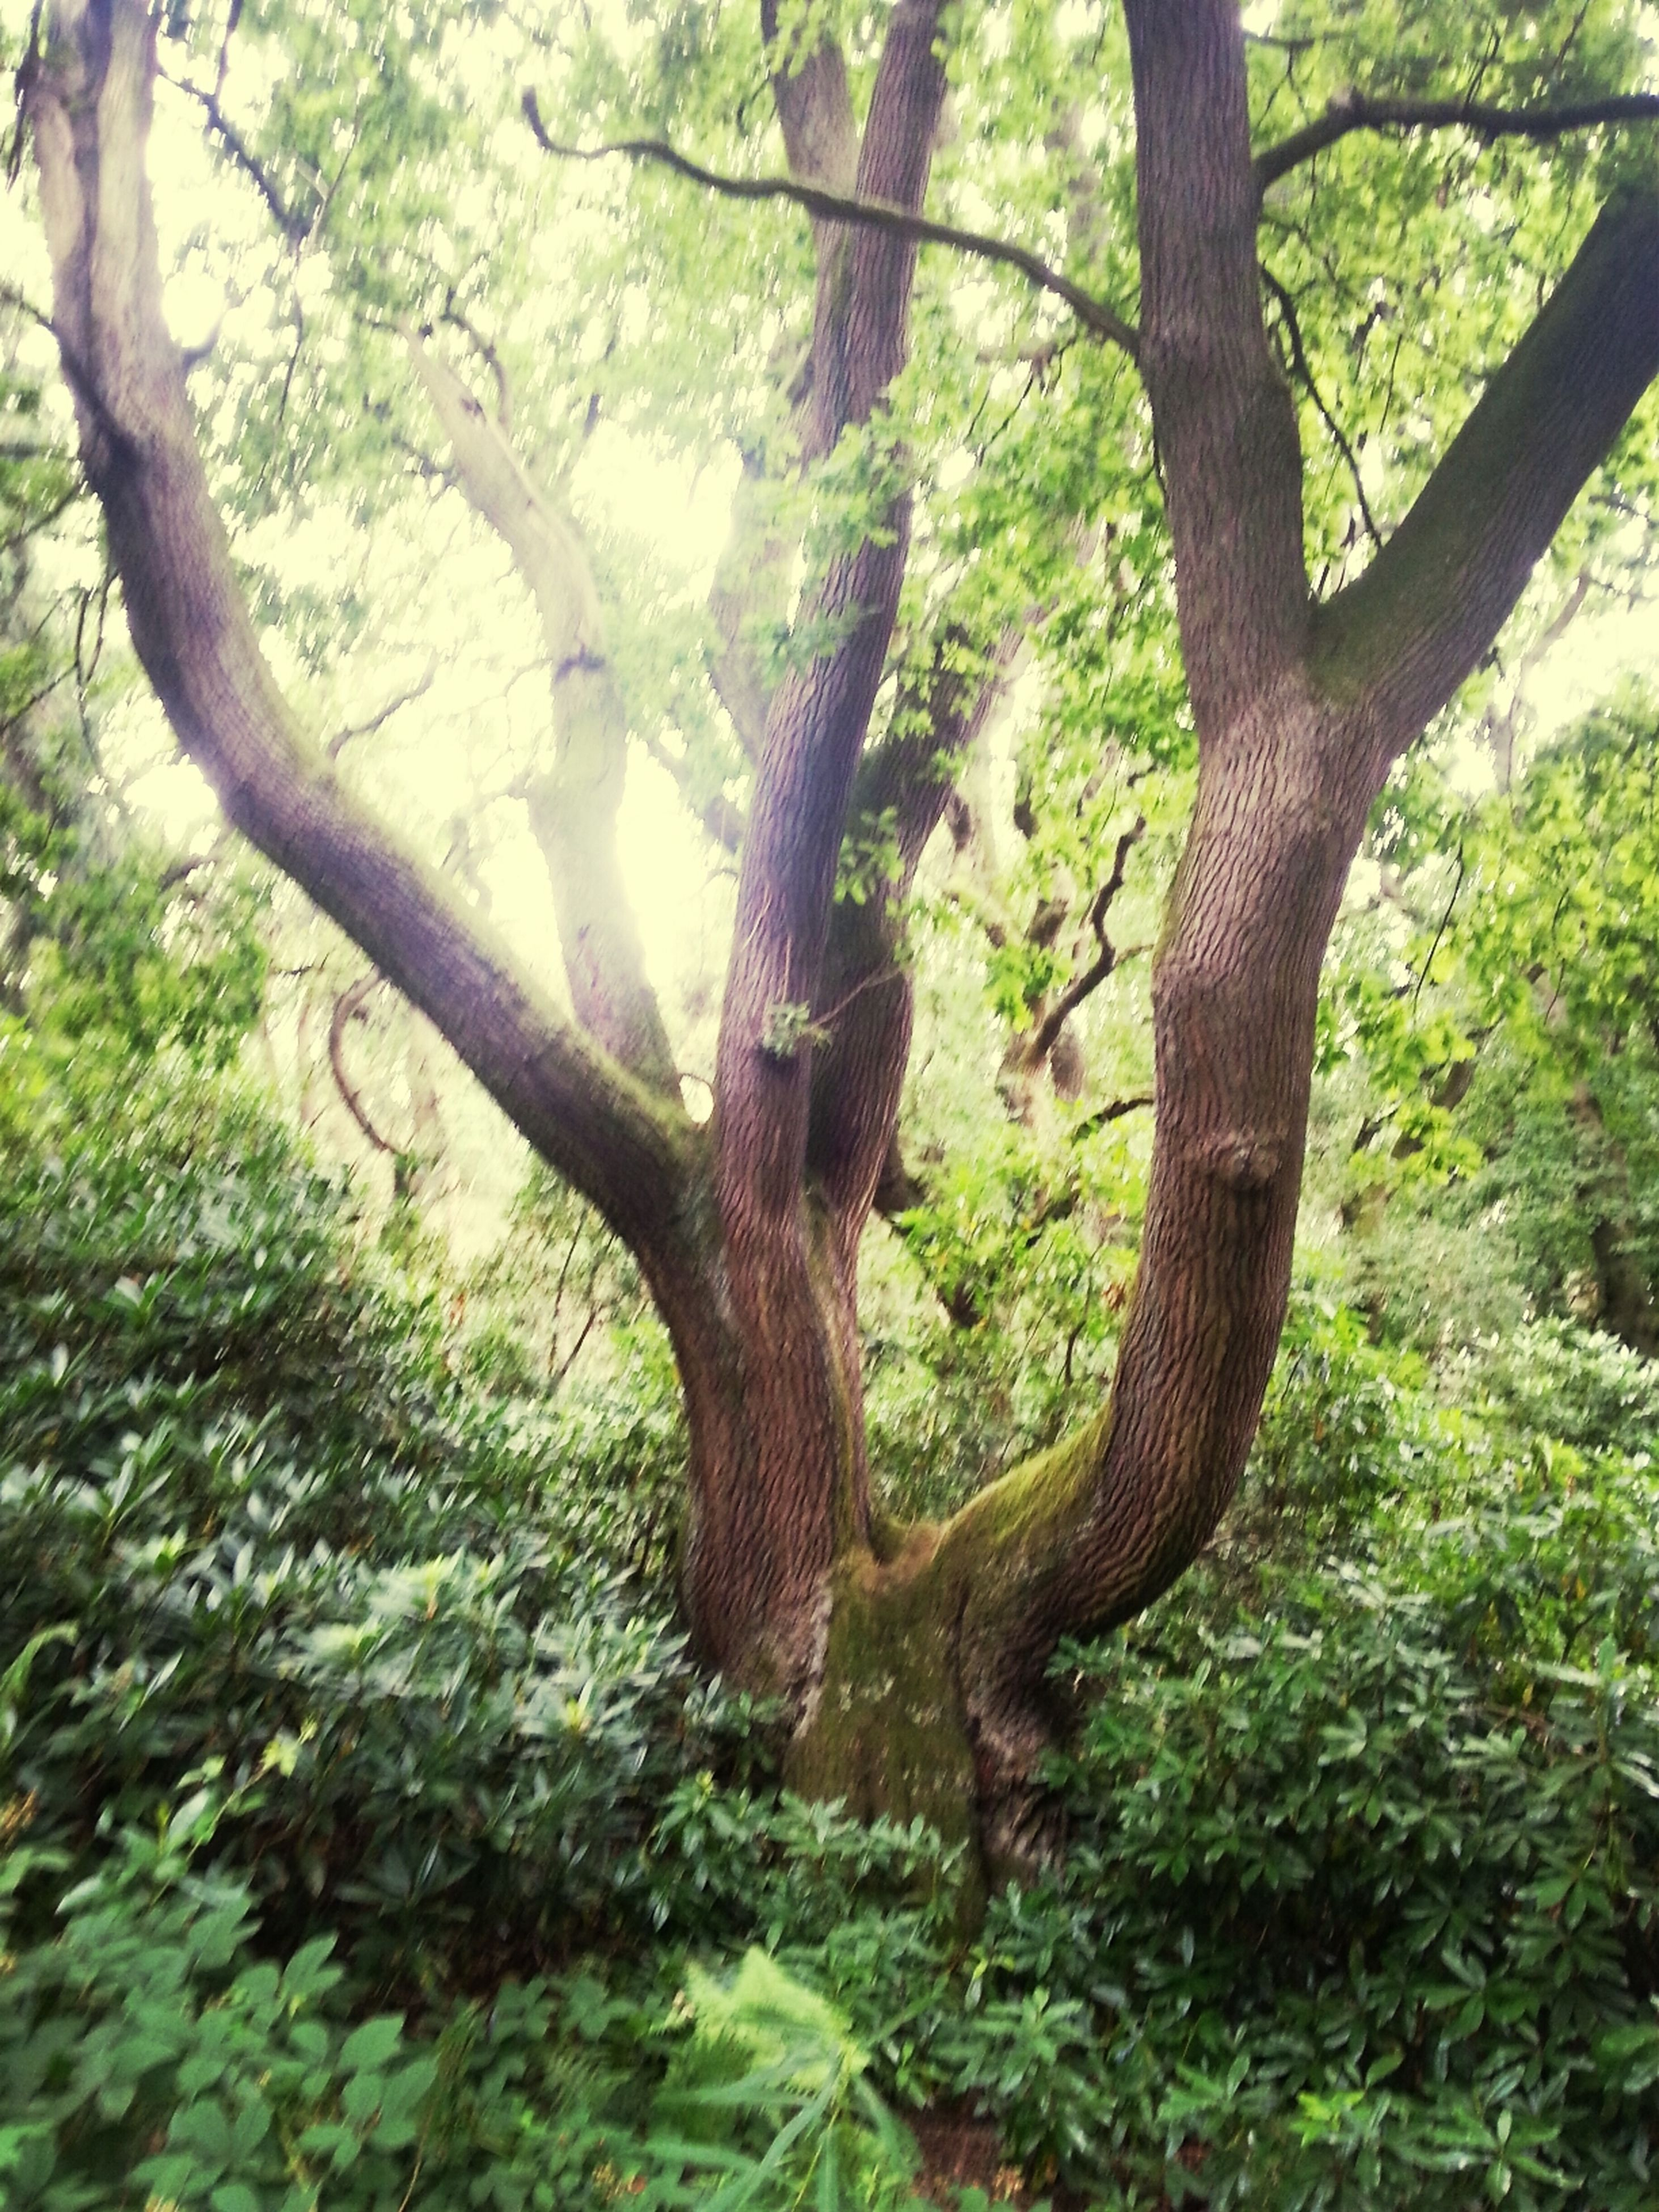 tree, forest, tree trunk, growth, nature, green color, tranquility, branch, beauty in nature, woodland, moss, scenics, tranquil scene, day, plant, outdoors, no people, non-urban scene, lush foliage, sunlight